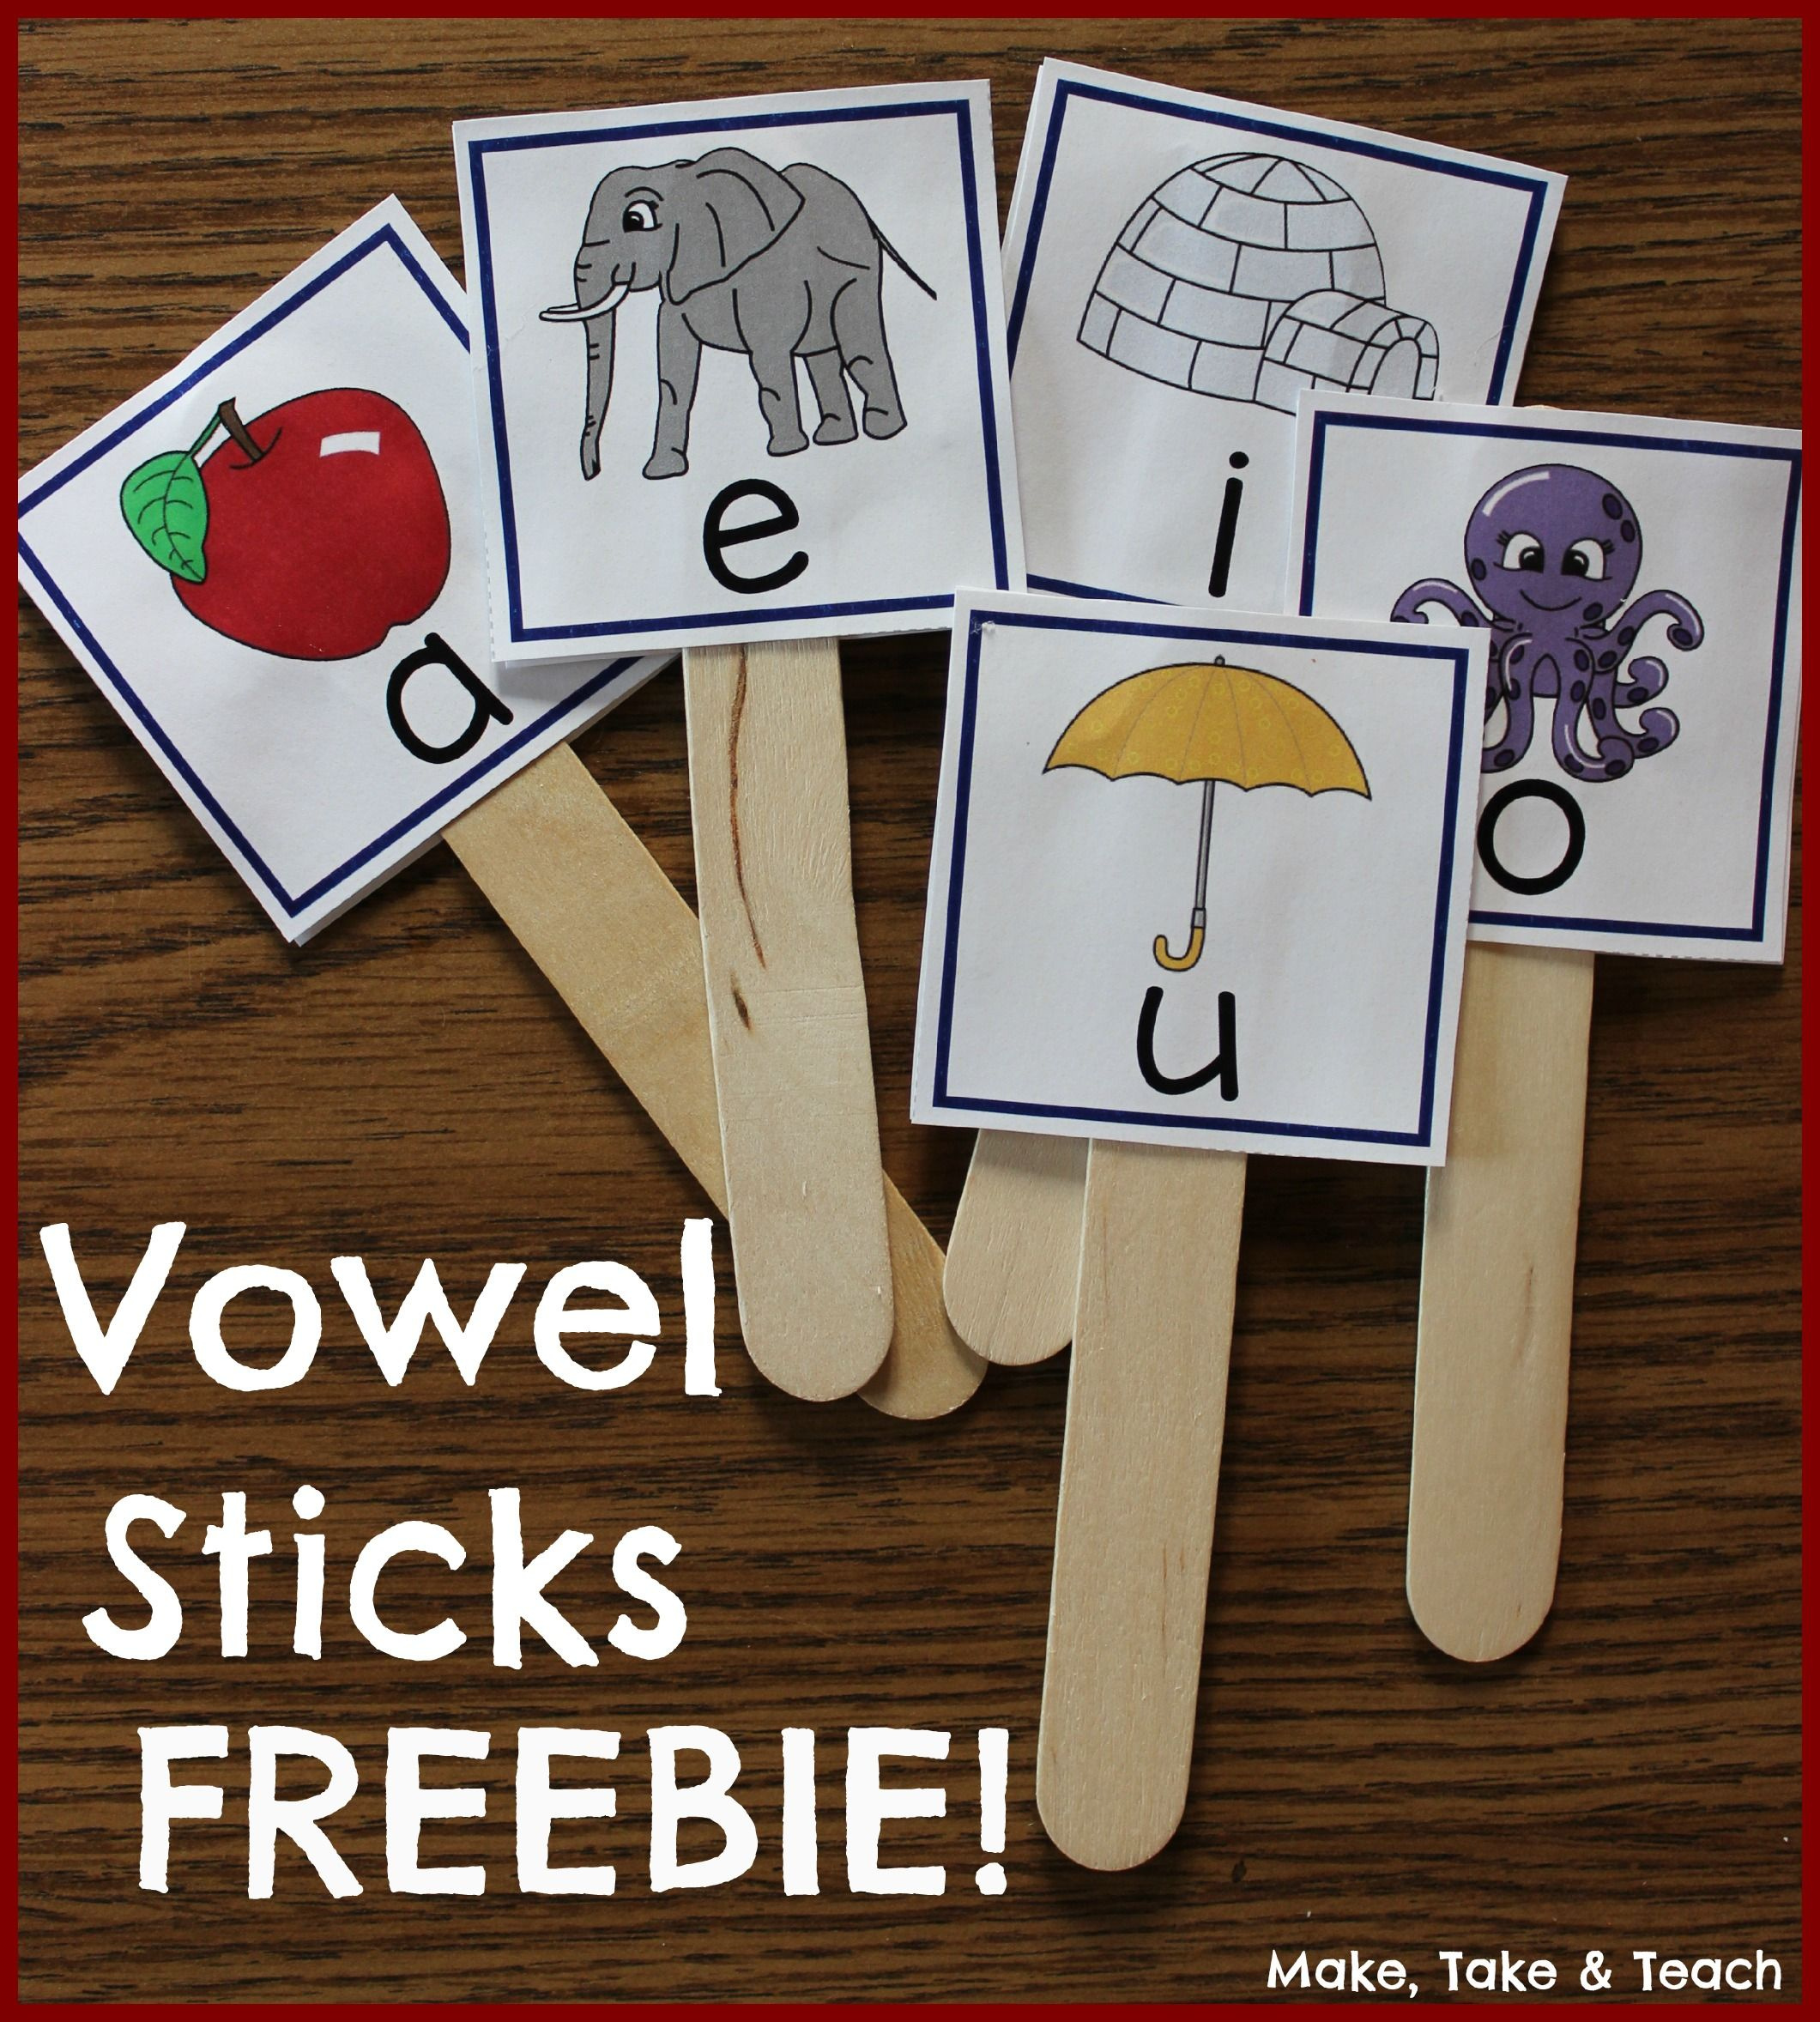 Great Activity To Help With Those Tricky Vowel Sounds